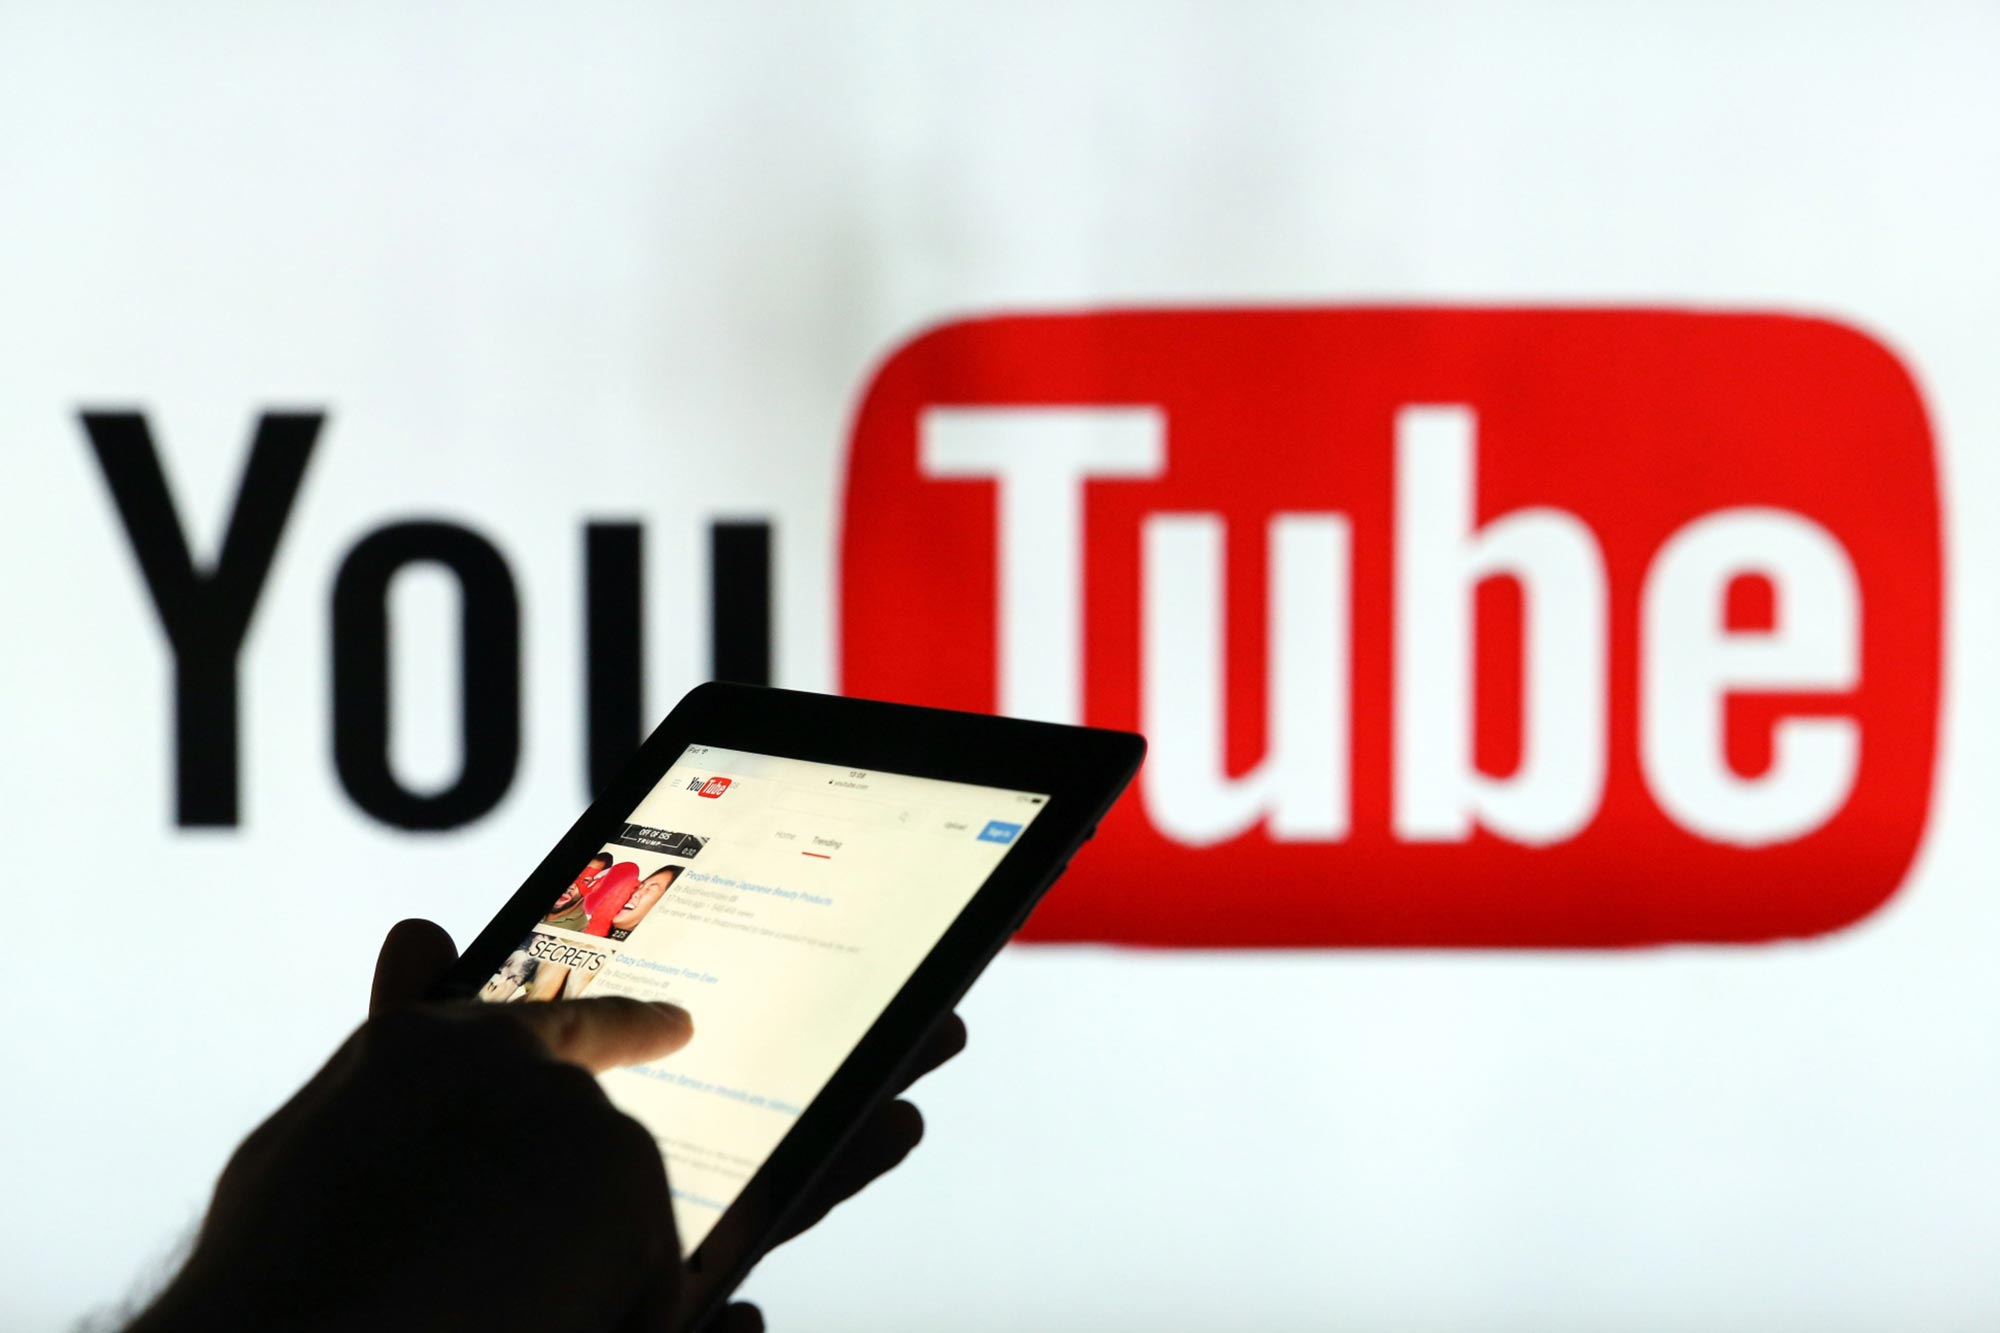 Google tries to turn YouTube into a major shopping destination